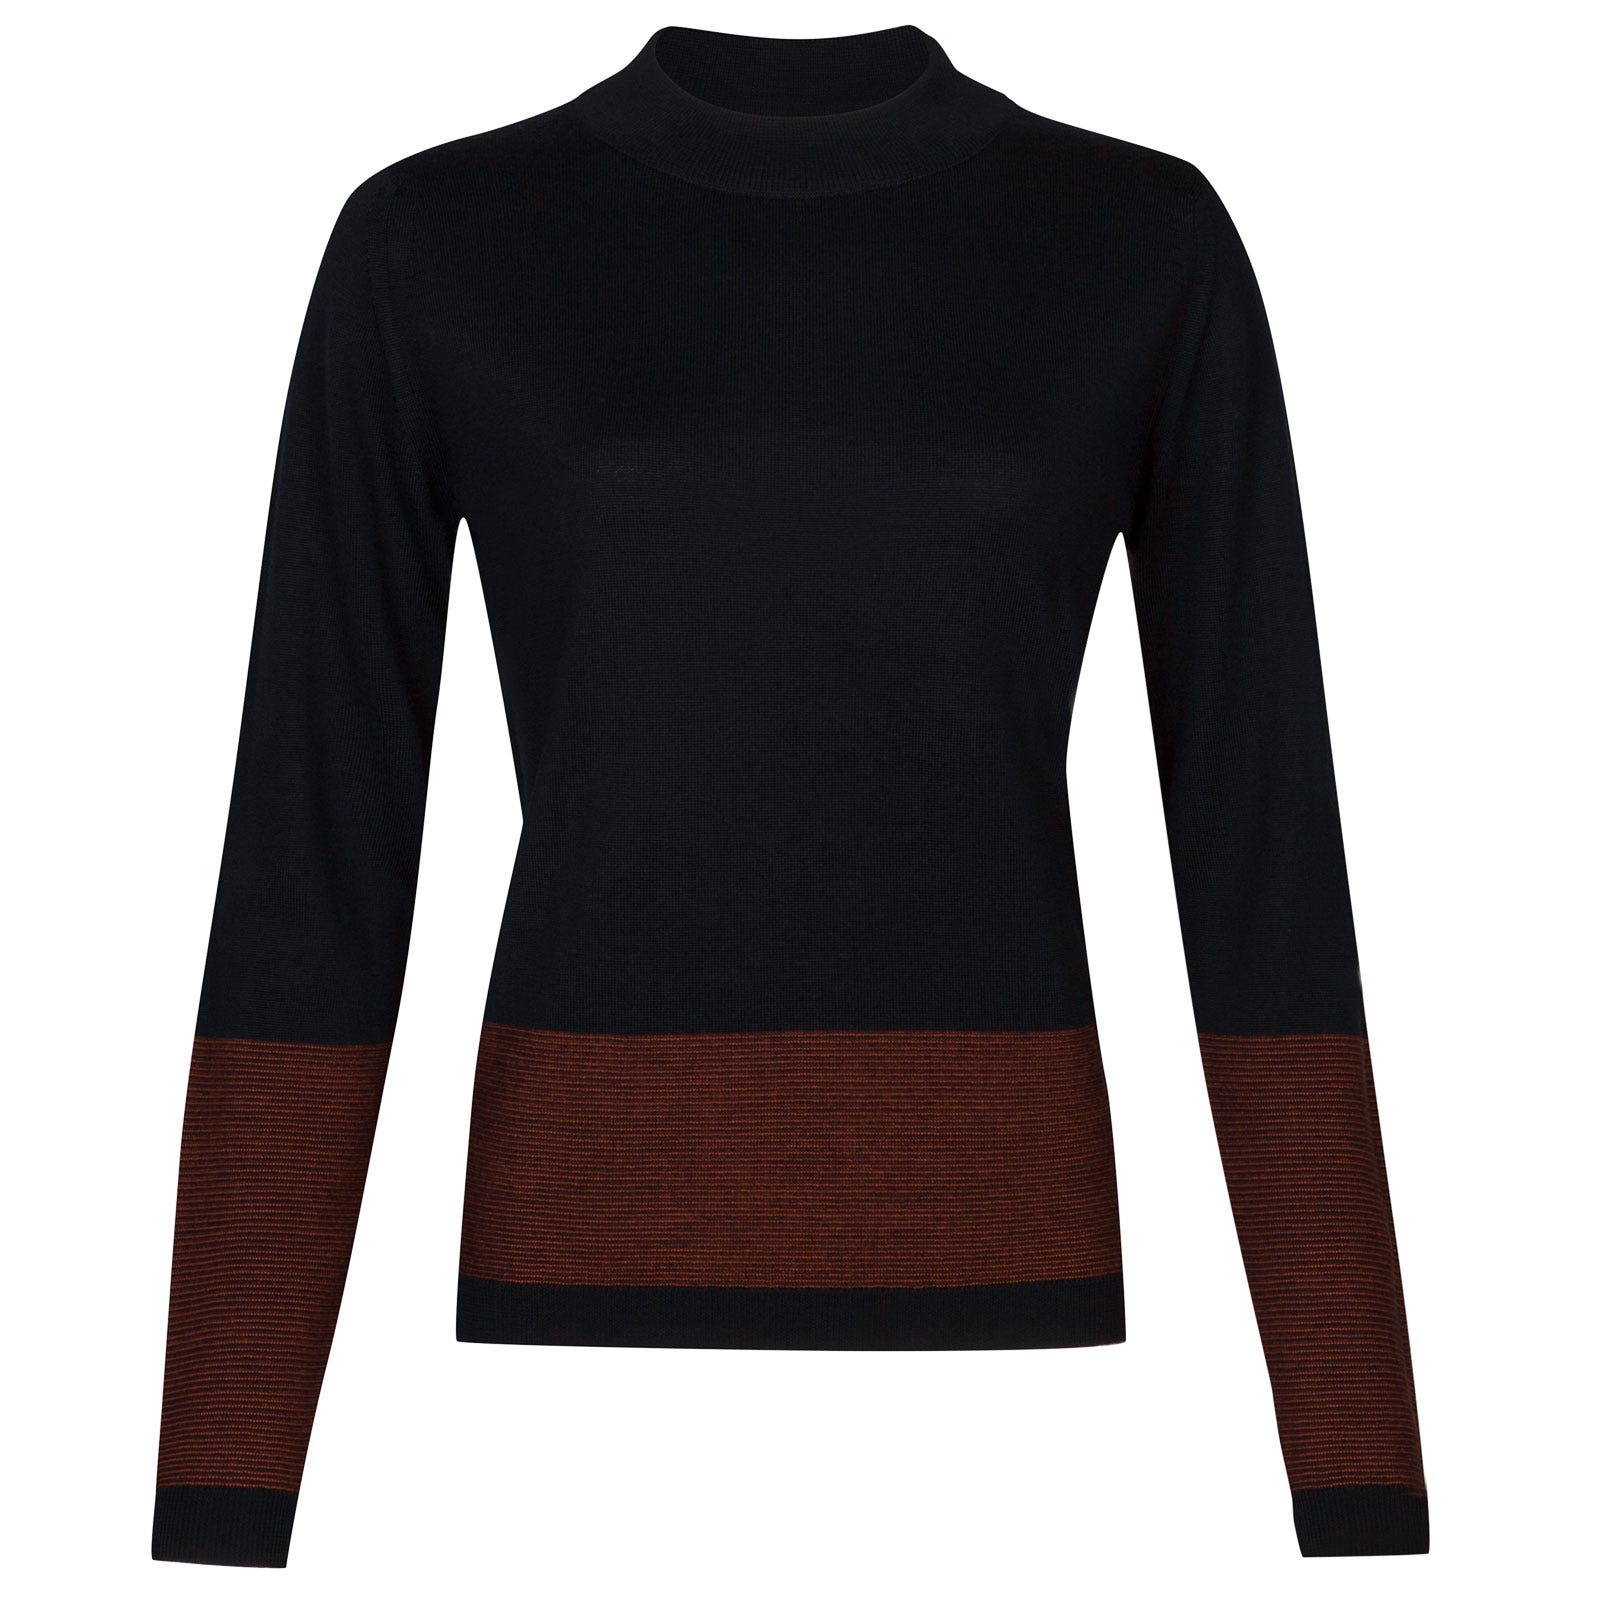 John Smedley sable Merino Wool Sweater in Midnight/Flare Orange-XL